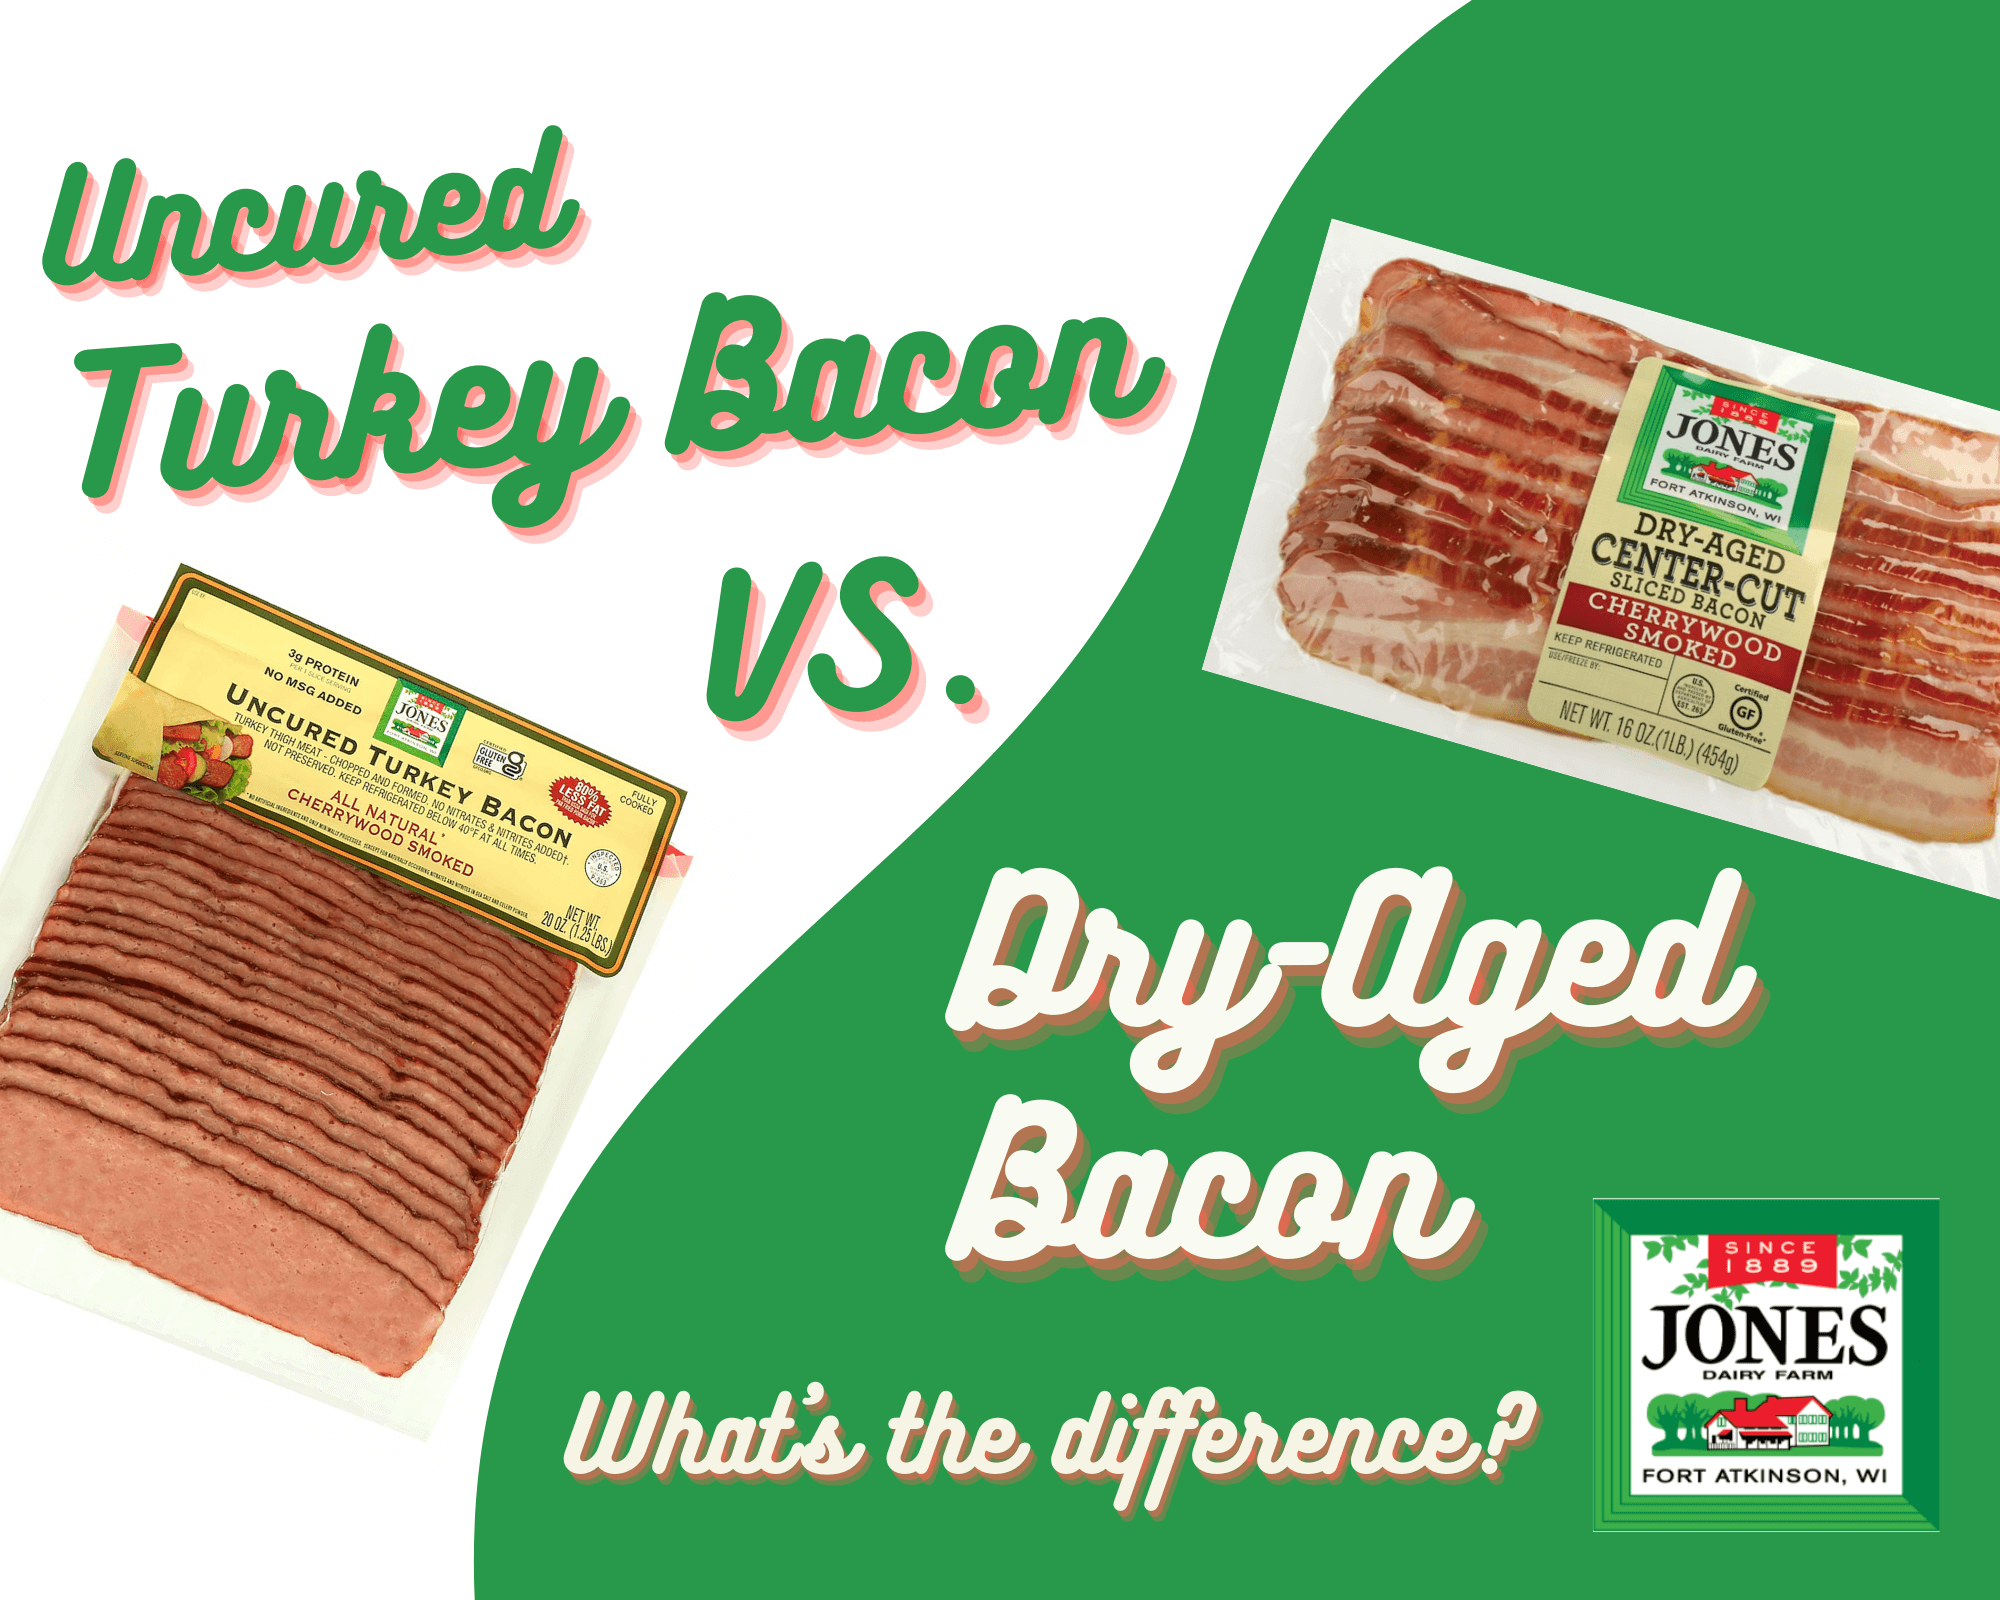 Turkey Bacon vs. Dry-Aged Bacon: What's the Difference?